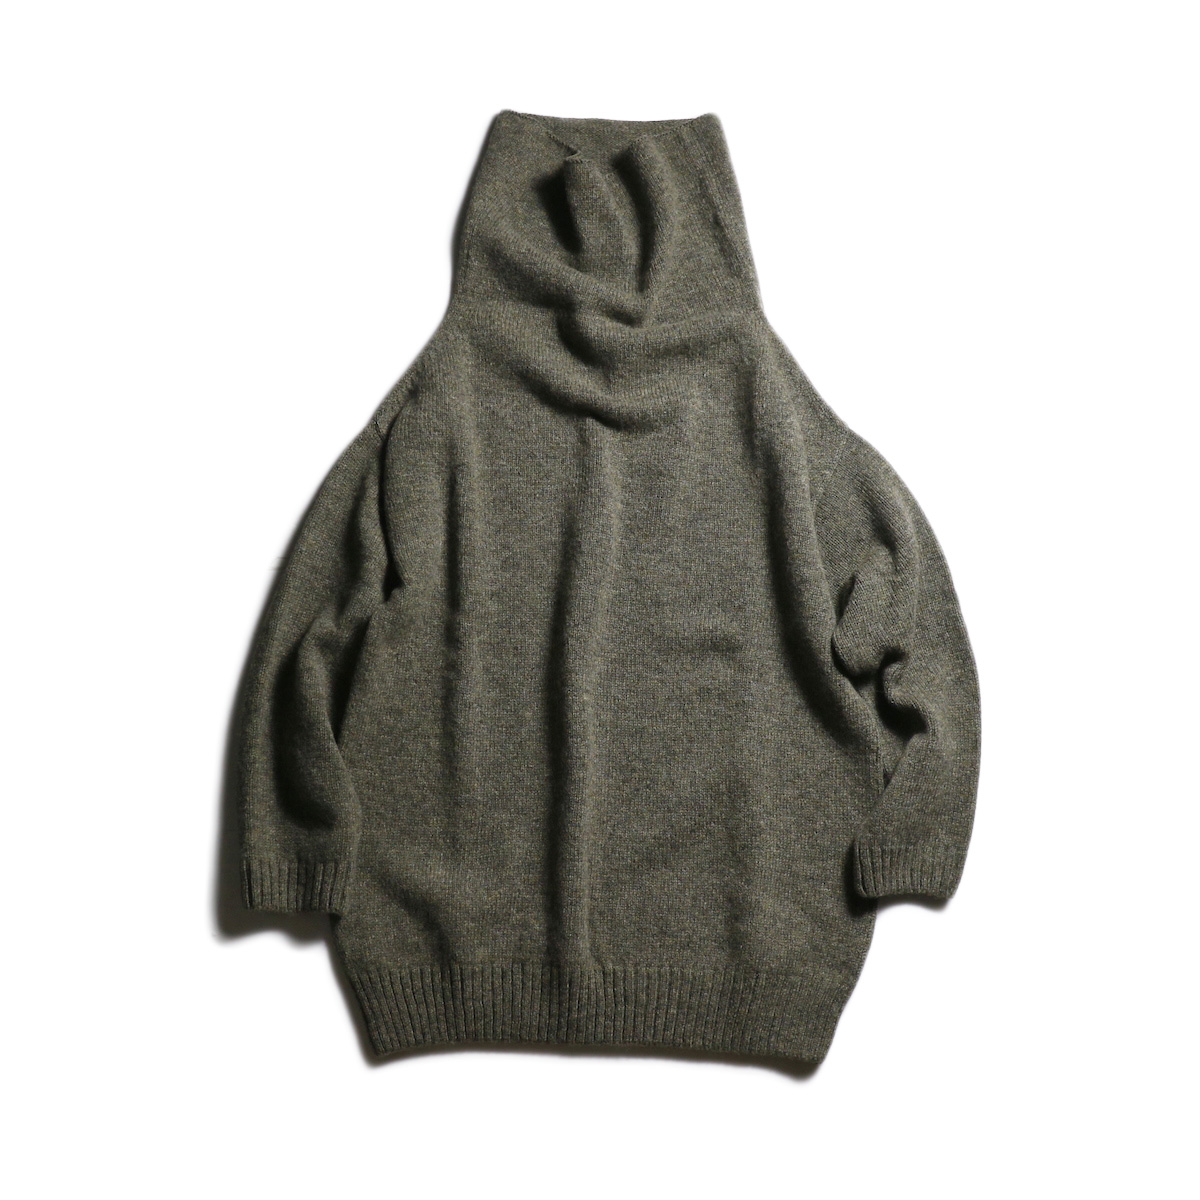 NOR'EASTERLY / L/S LOOSE TURTLE (Oyster)